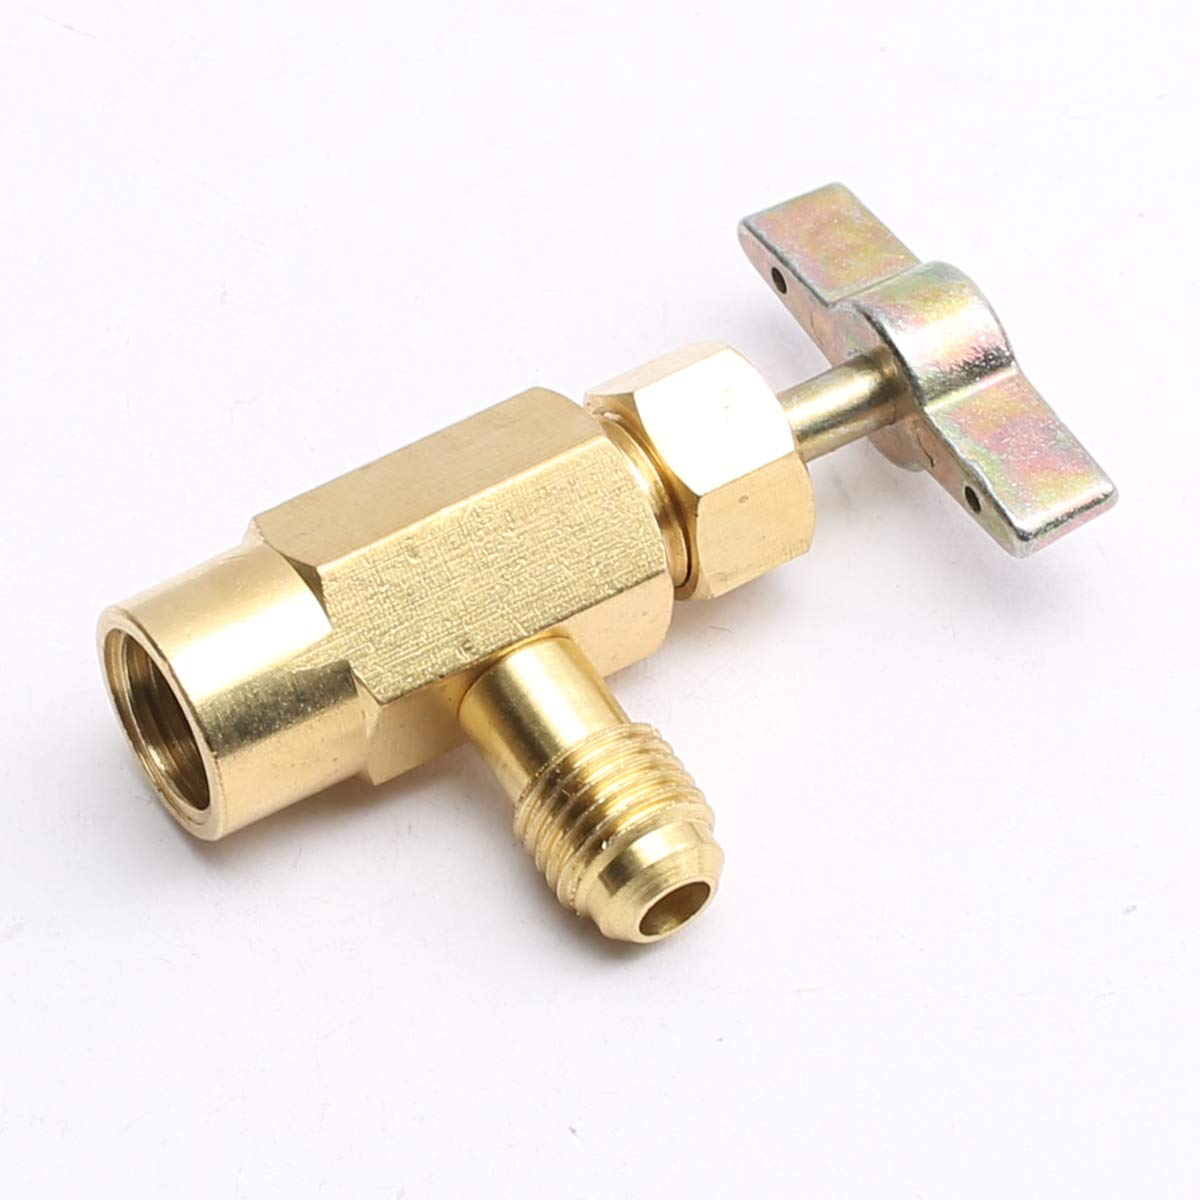 "R-134a AC Refrigerant Gold Brass Can Tap Dispensing 1//2/""Acme Thread Valve"